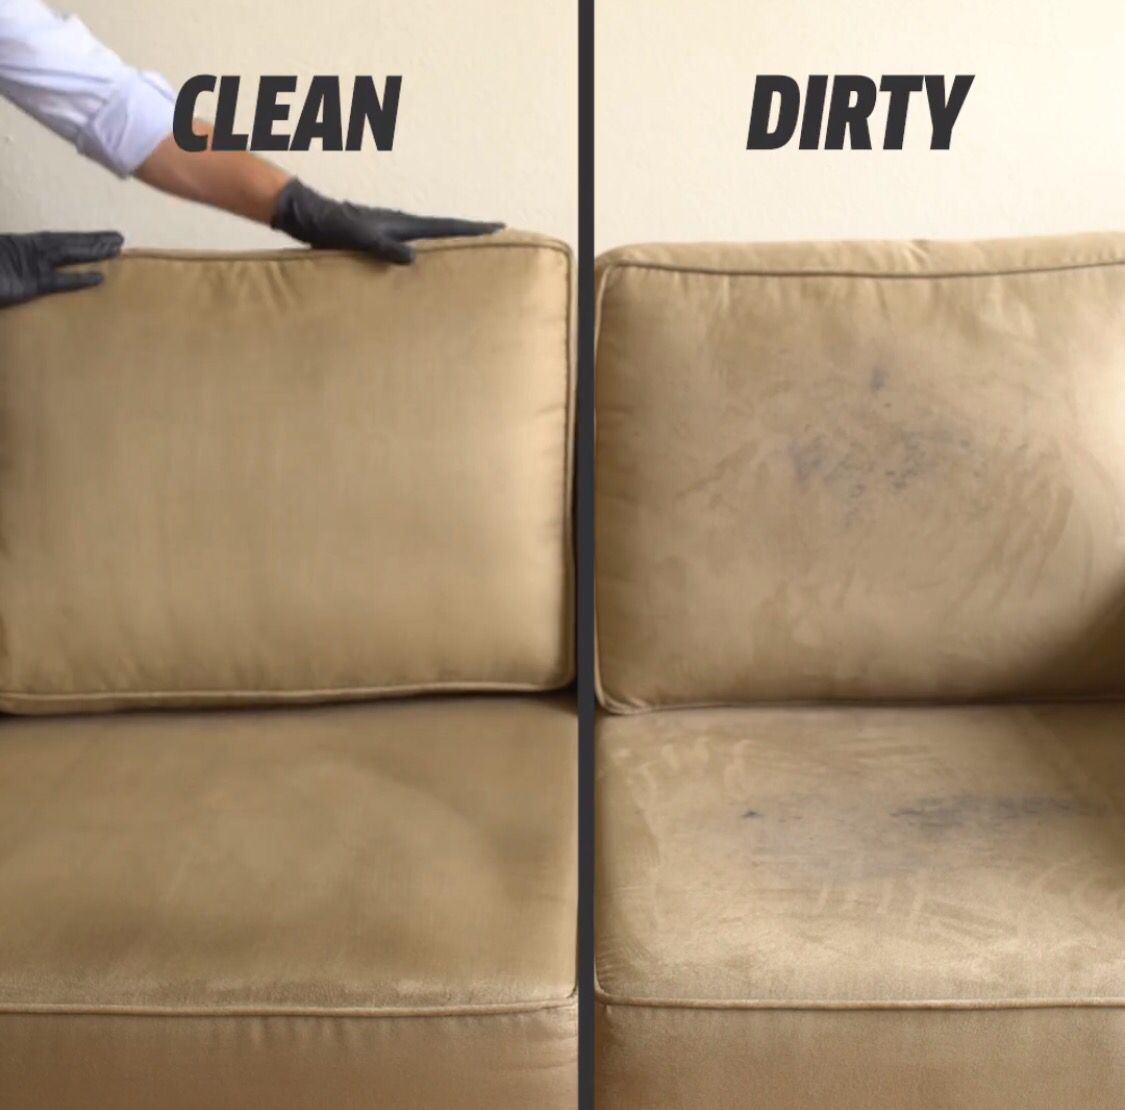 Diy Couch Cleaner 17oz Water 5oz Alcohol 3 4oz White Vinegar 1 5oz Baking Soda 1tbs Fabric Soften Clean Couch Clean Fabric Couch Cleaning Microfiber Couch